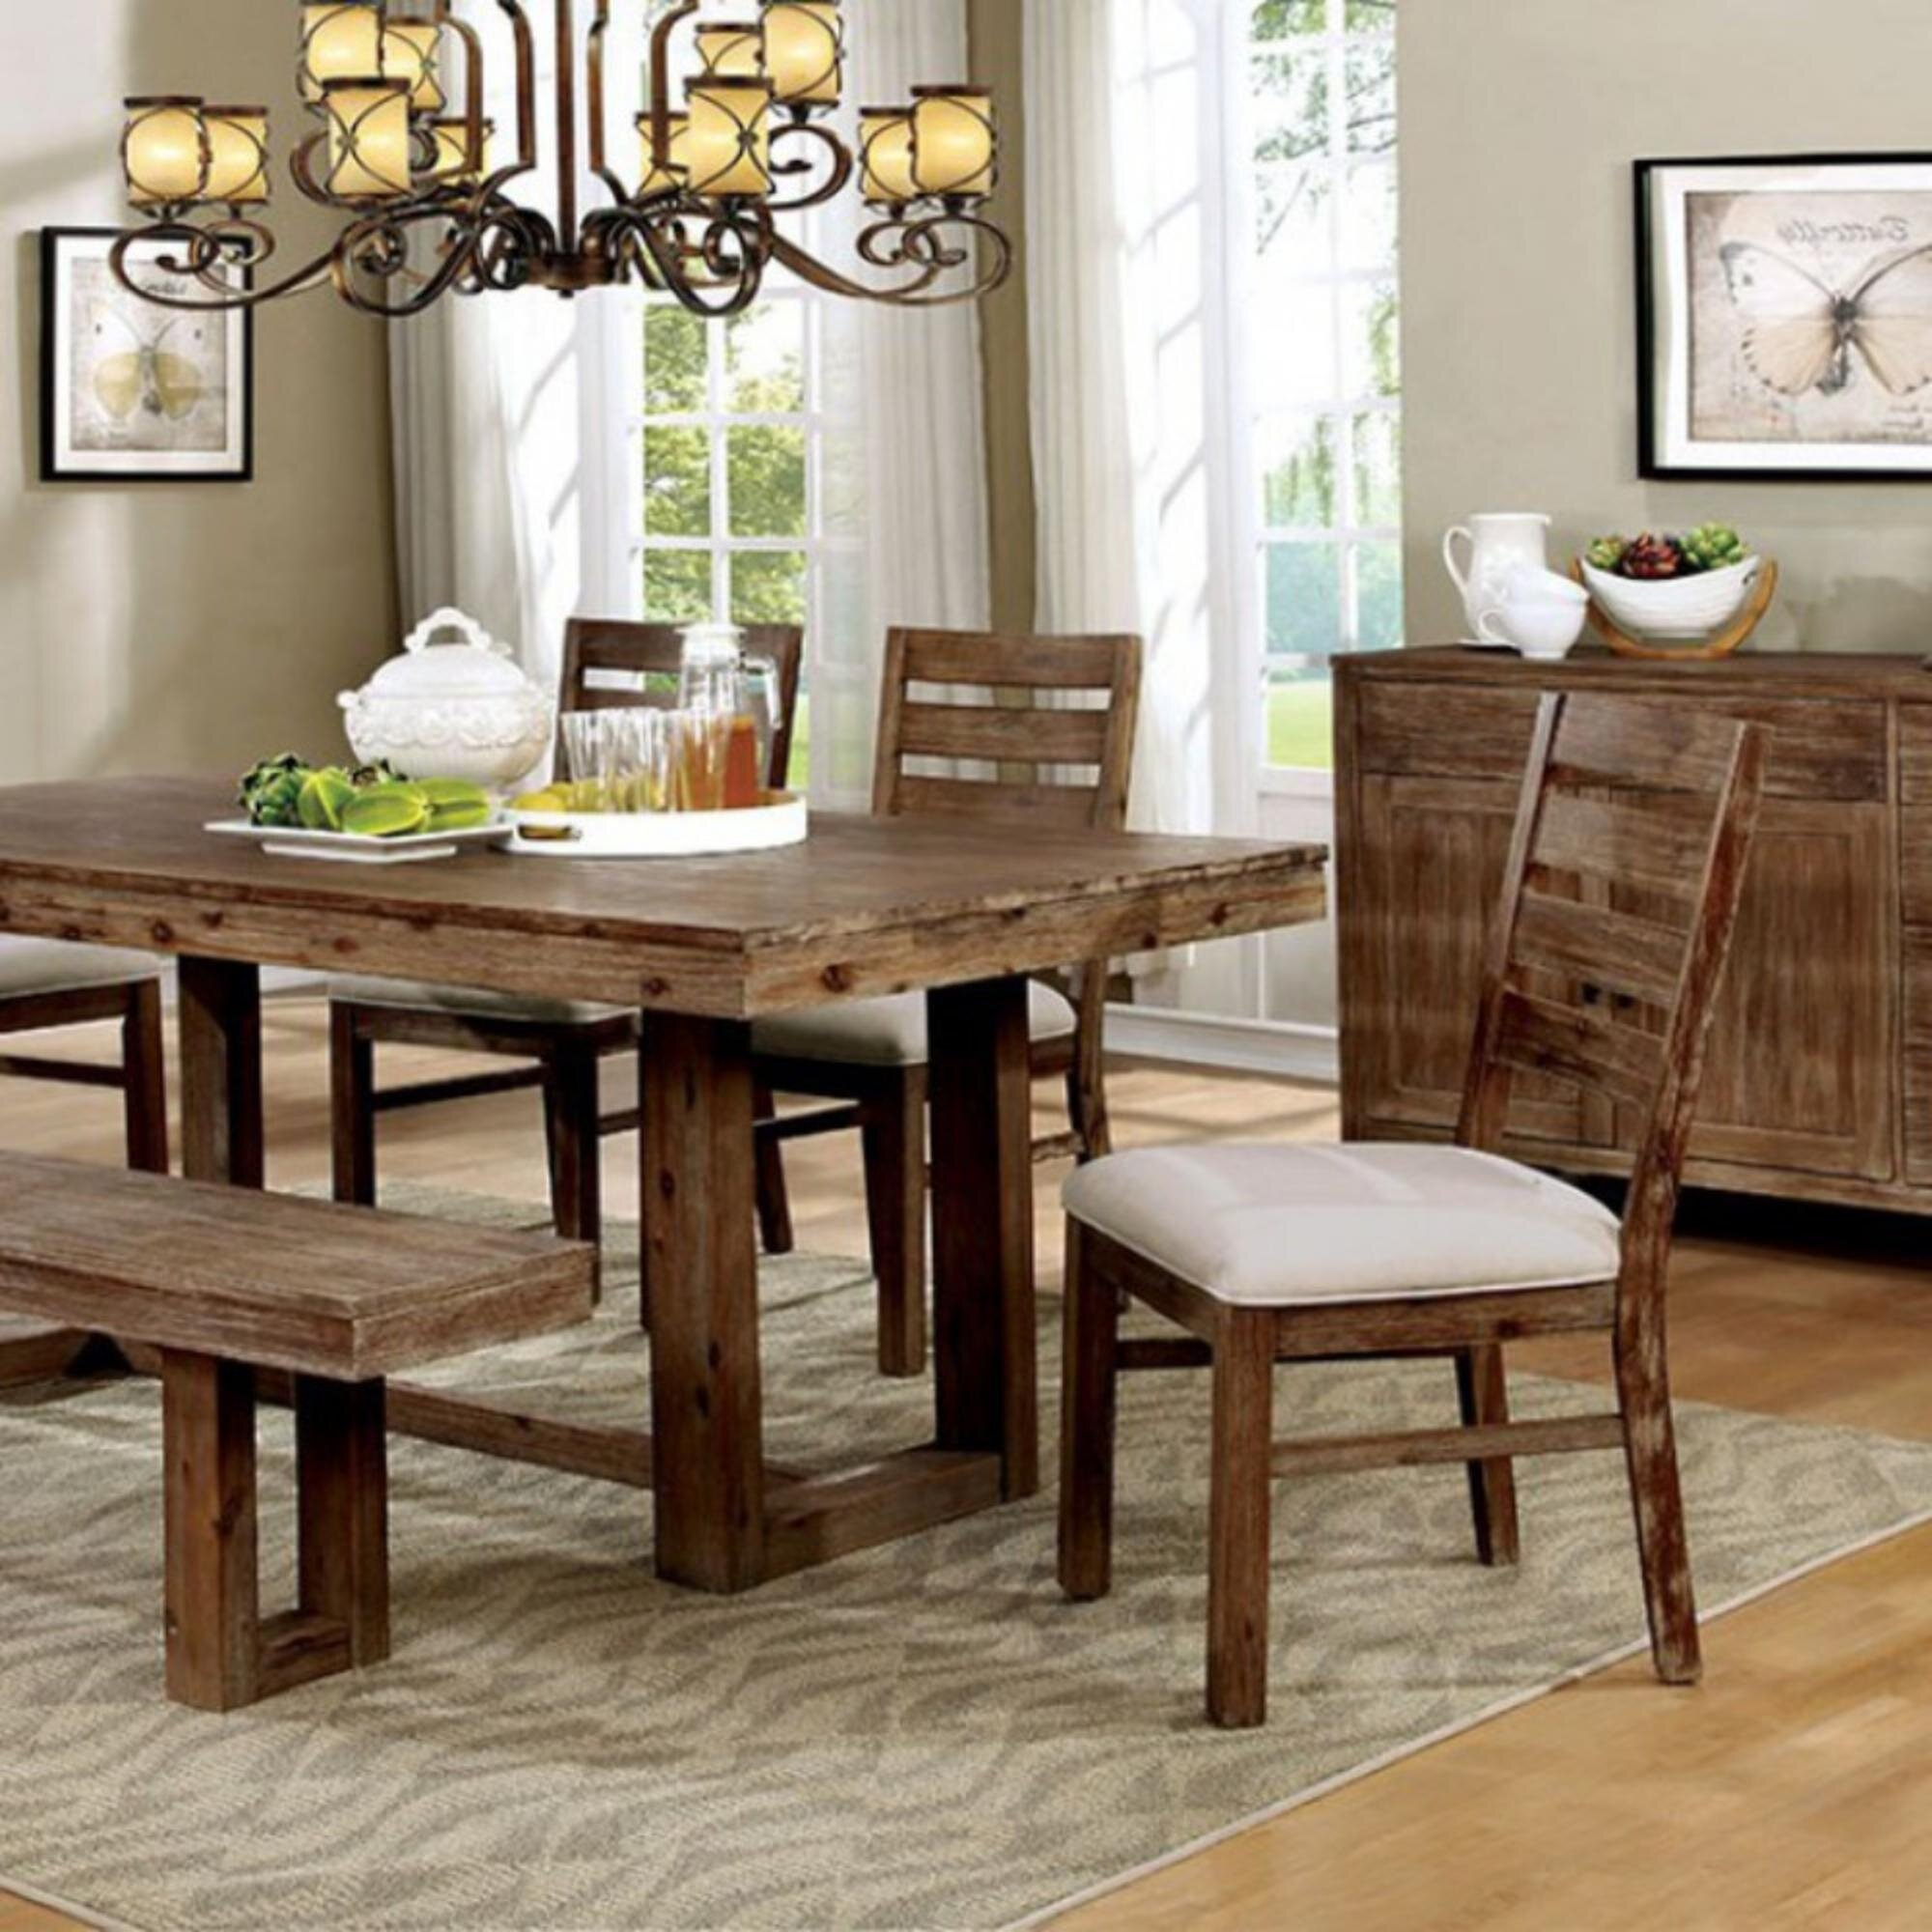 Union Rustic Thibodeaux Country Solid Wood Dining Table Wayfair